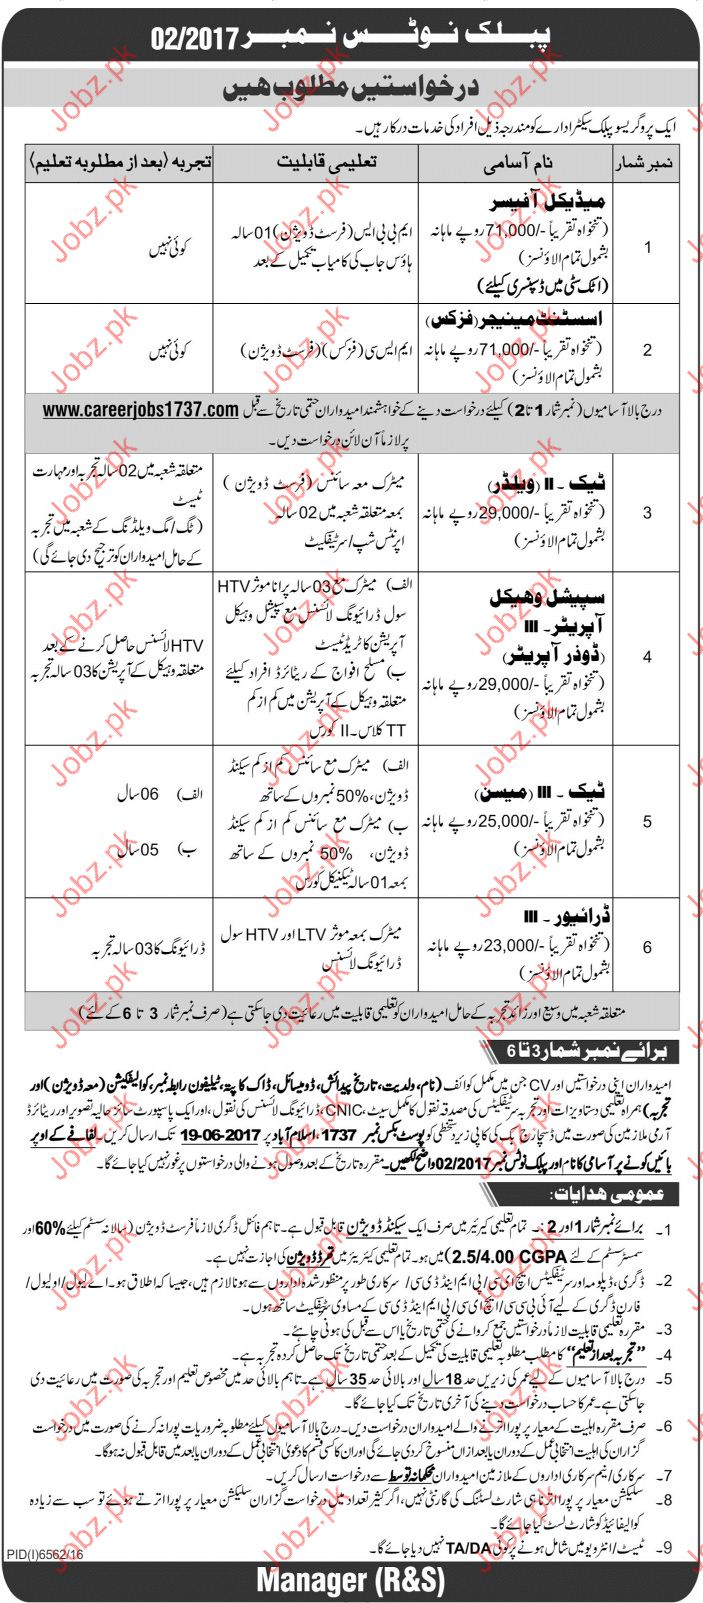 Medical Officer in Jobs Public Sector